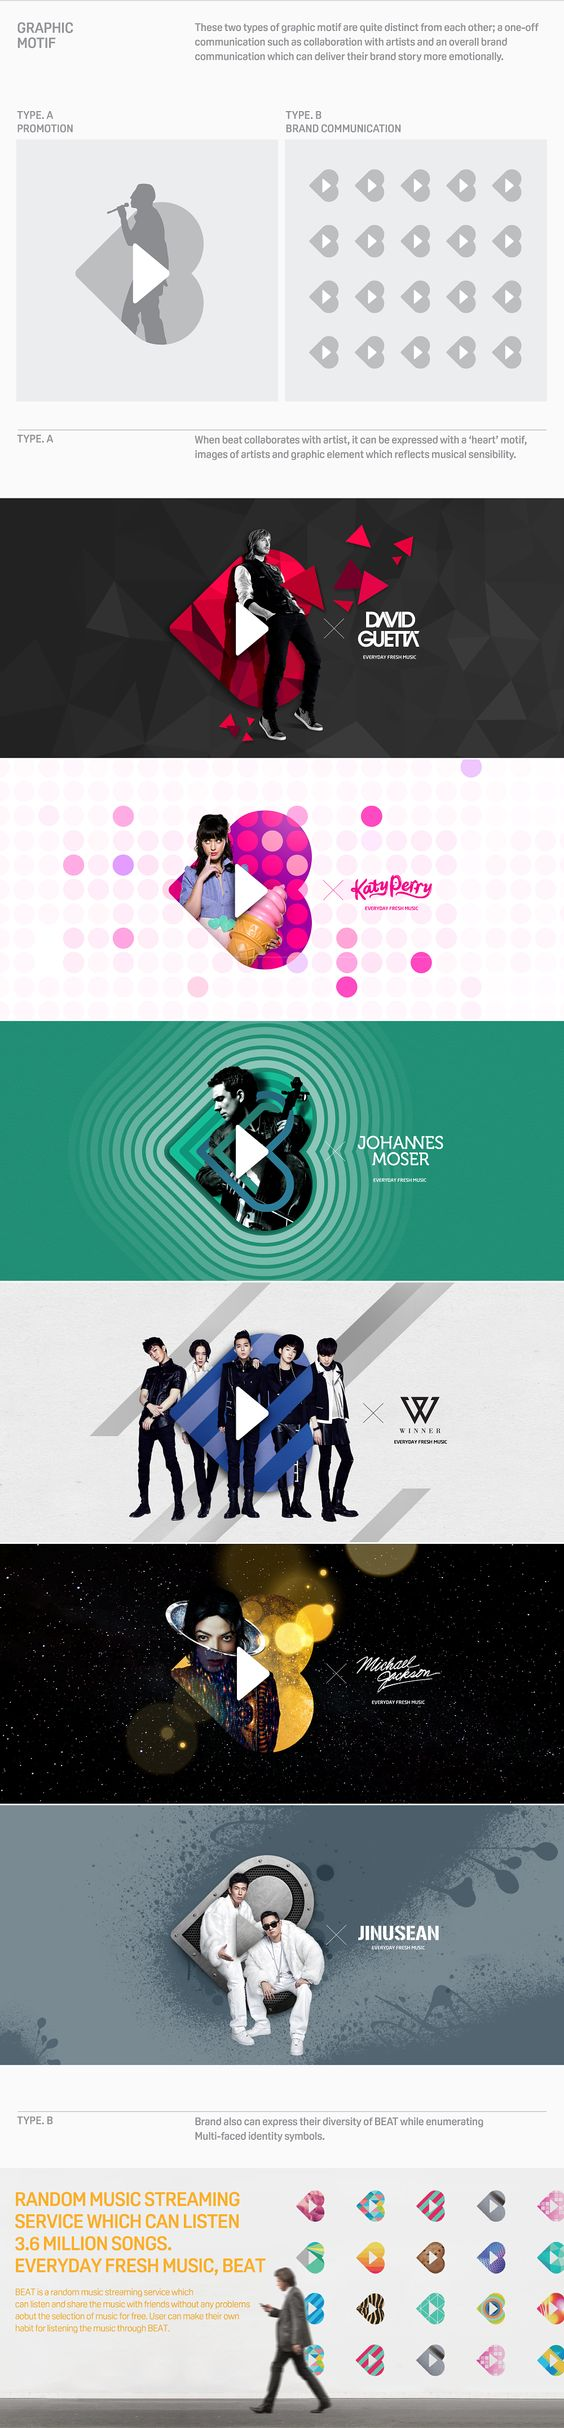 Style frames - motion graphic design  EVERYDAY FRESH MUSIC, BEAT Brand eXperience Design on Behance: